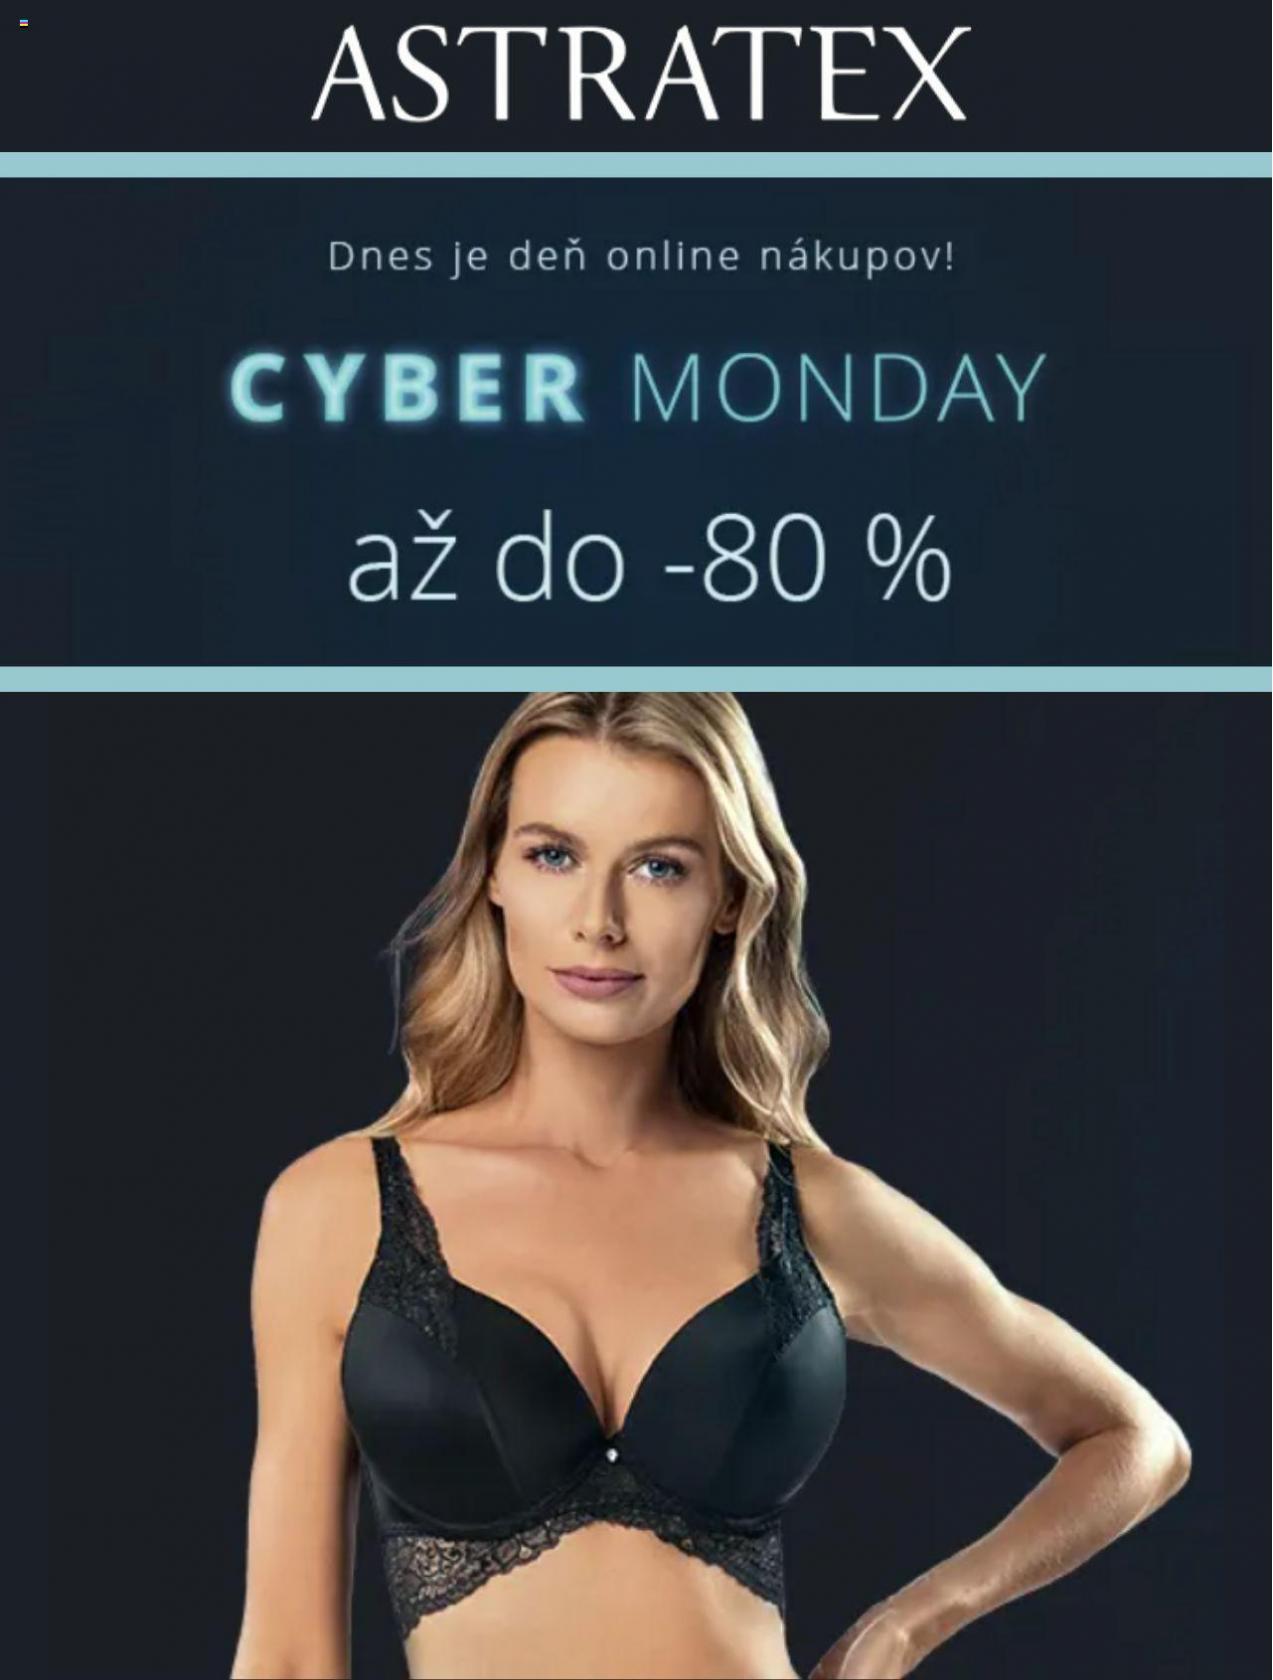 Astratex - Cyber Monday - #0